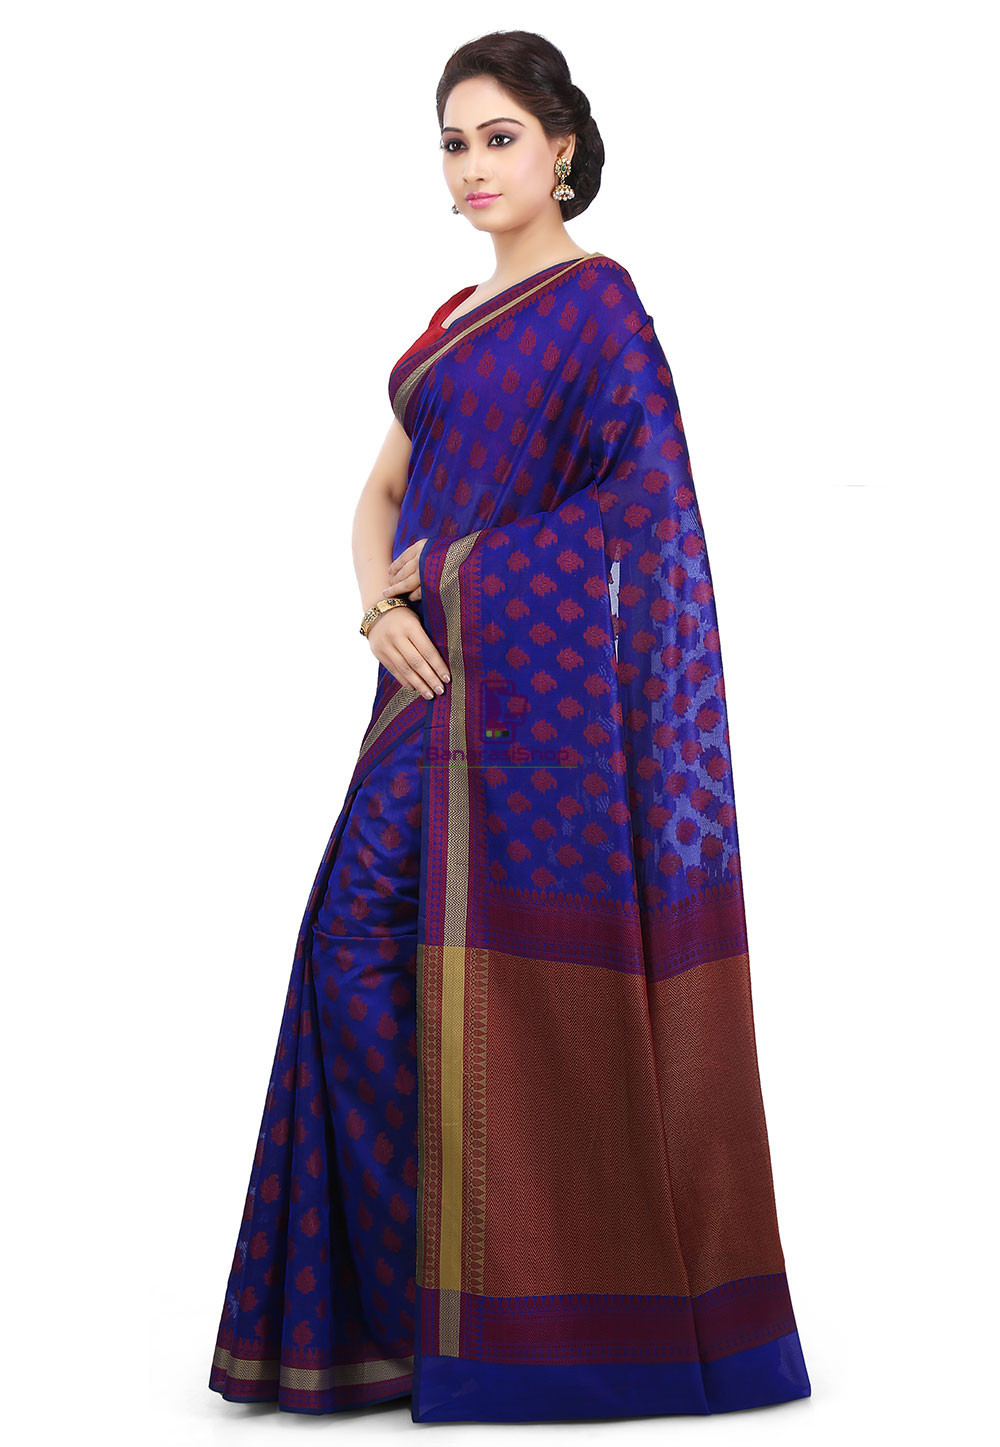 Woven Banarasi Art Silk Saree in Royal Blue 5